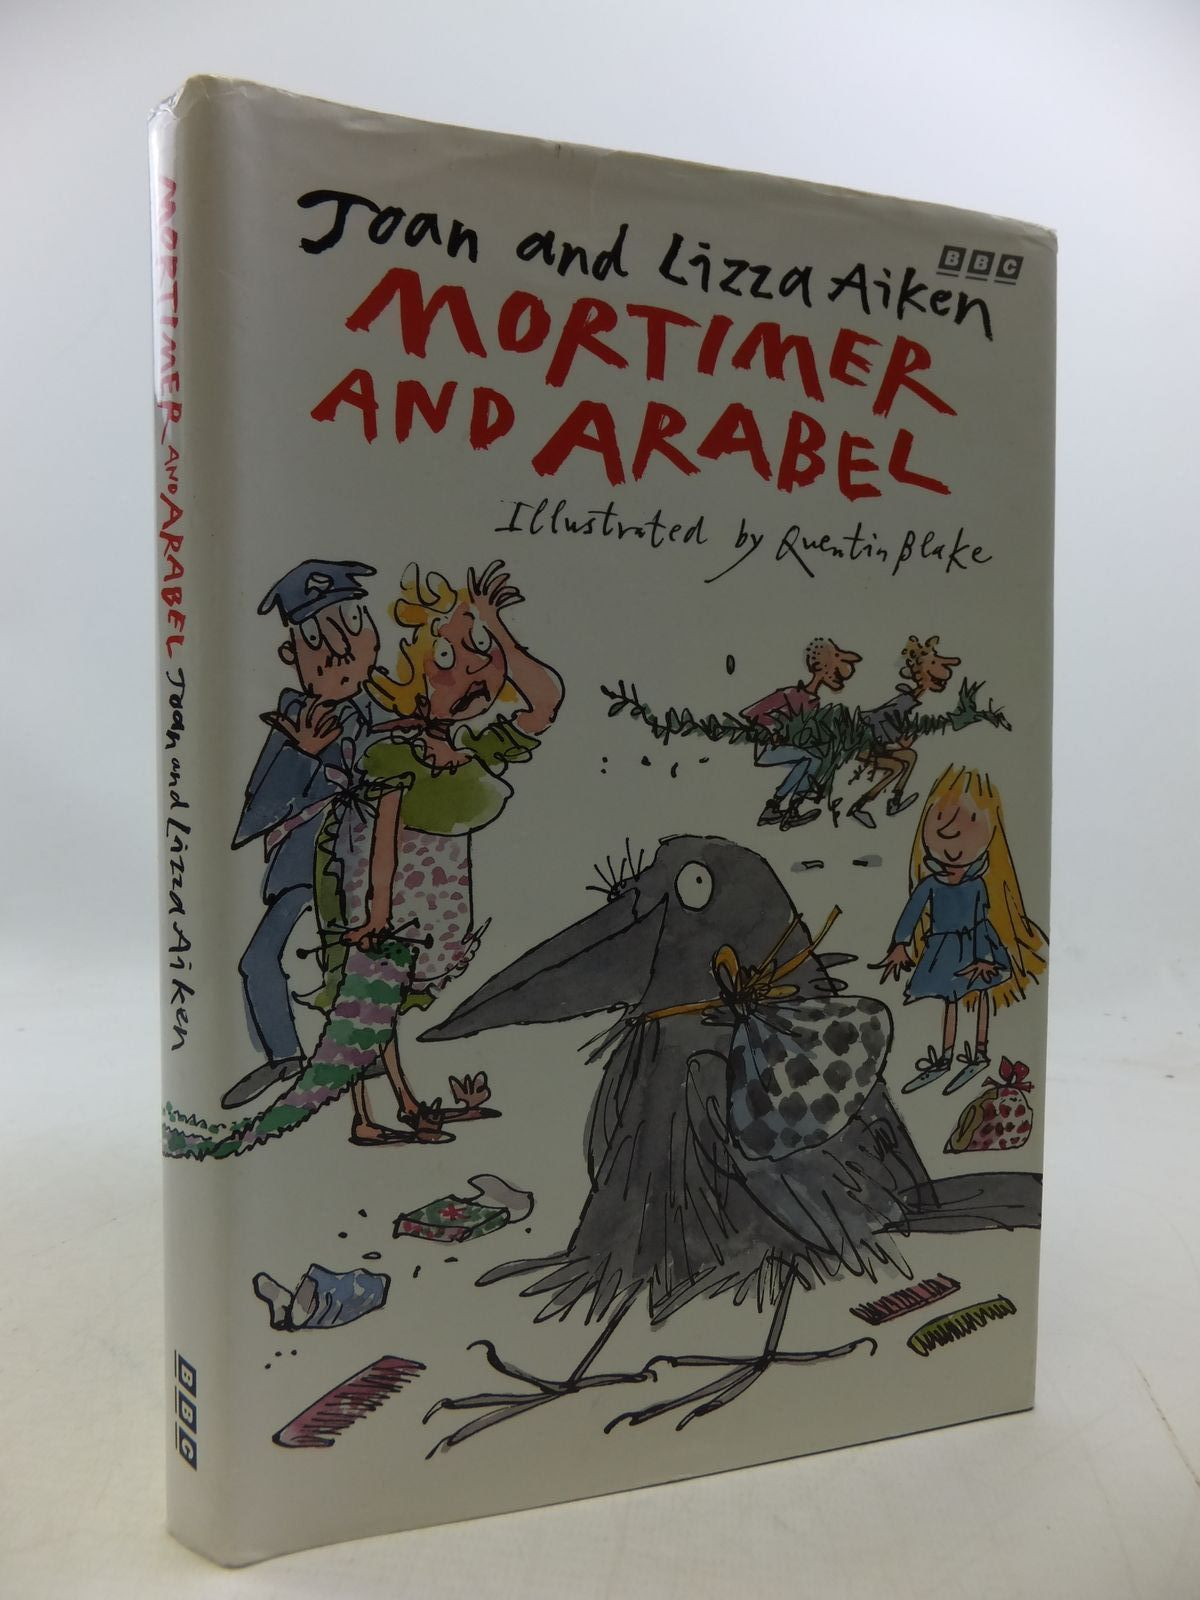 Photo of MORTIMER AND ARABEL written by Aiken, Joan Aiken, Lizza illustrated by Blake, Quentin published by BBC Books (STOCK CODE: 1808535)  for sale by Stella & Rose's Books